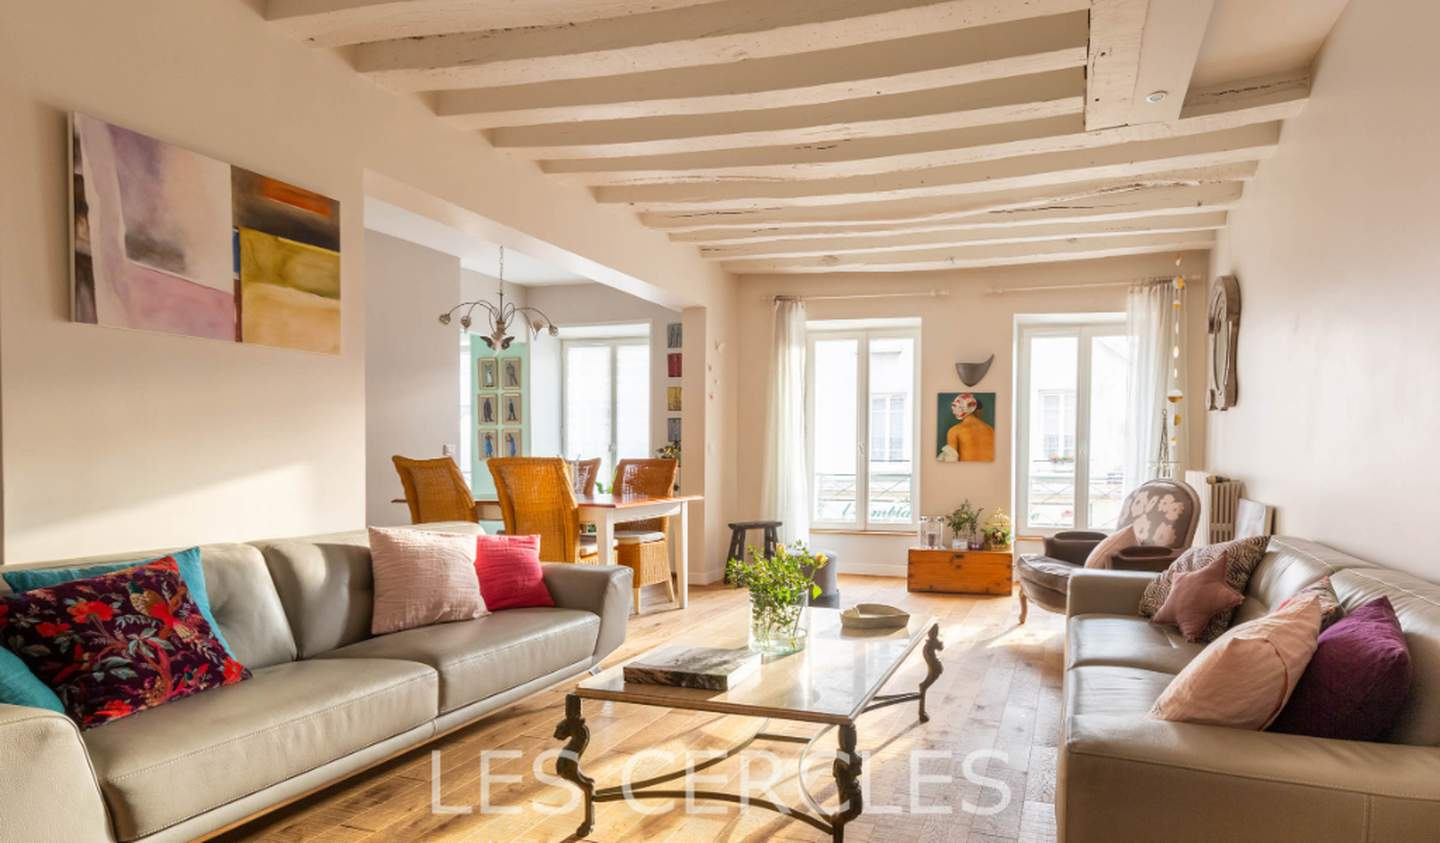 Appartement avec terrasse Saint-Germain-en-Laye